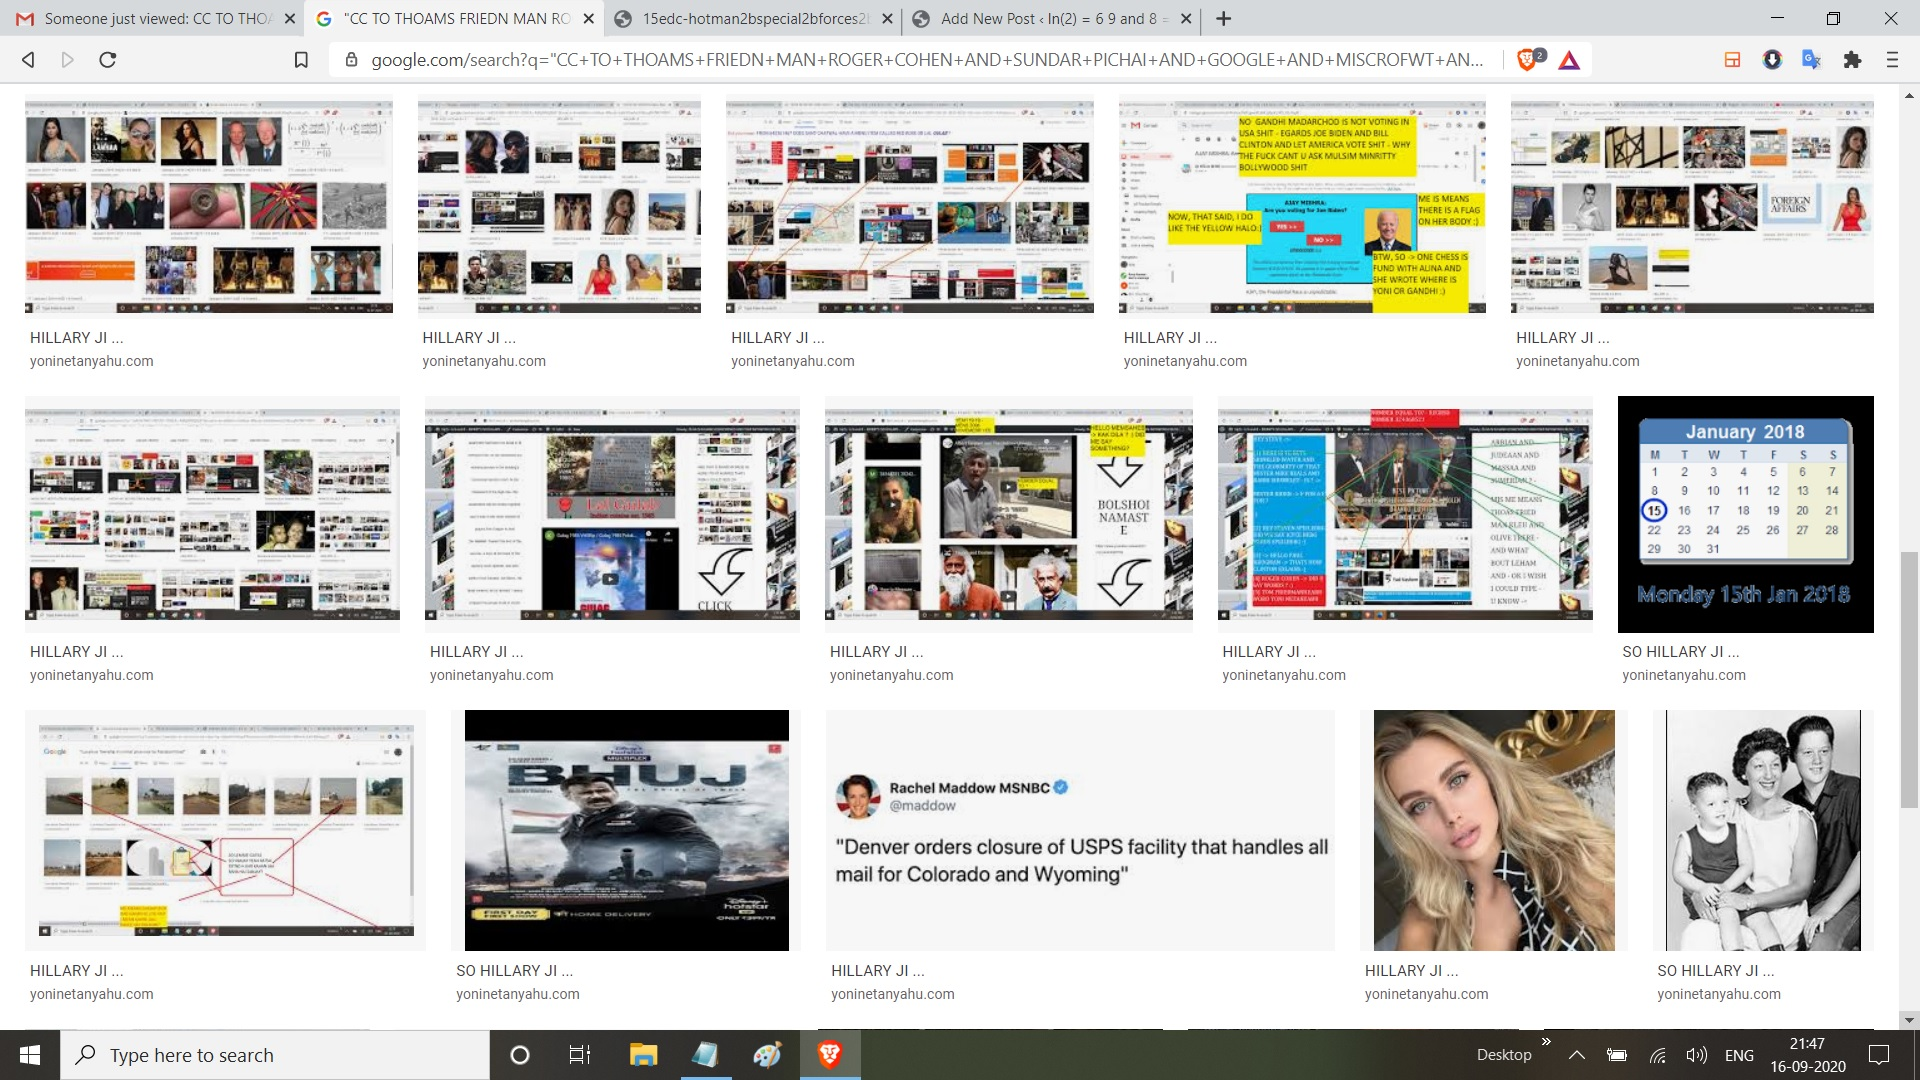 """CC TO THOAMS FRIEDN MAN ROGER COHEN AND SUNDAR PICHAI AND GOOGLE AND MISCROFWT AND - ALL STATE DEPATMENT - QUIZ -> DID NEW YORK CLICK THIS ? - THIS IS CAKED INSTCTS - AND - DID - HEME SAY IN ADVANCE - I MENA ON TOP OF WHITE HOSUE DO U SEE HOTMAN ? OK SO NEW OR WHEN U CLCIKED THIS - DID U ET THE RENE LINE BLUE LINE SHIT ? OK - THIS IS CALEDD EX ANTE GOLAN FUCKING HEIGHTS - OK UNCLE SPIELEBRG AND KATZENBERG - TAHST CALED CLINTON DOENST LIKE TO READ AND CLICK ADNASUEUM SAME FOR POLLS JOE BDINE SAHEB - MEANS SIR BIDEN -> MEANS CIAO SPEECH AND APRMS AND PARS - U CAN SEE BELOW IN A FEW POSTS BELOW - http://yoninetanyahu.com/wp-content/uploads/2018/01/15edc-hotman2bspecial2bforces2bsisraelies2band2byou2bessay2band2bbhotton2band2bmexoci2band2bitalie2band2bhindoos2bevan.jpg"" People on thread: 208 Westhaven Drive 78746 Blog Post By Email"